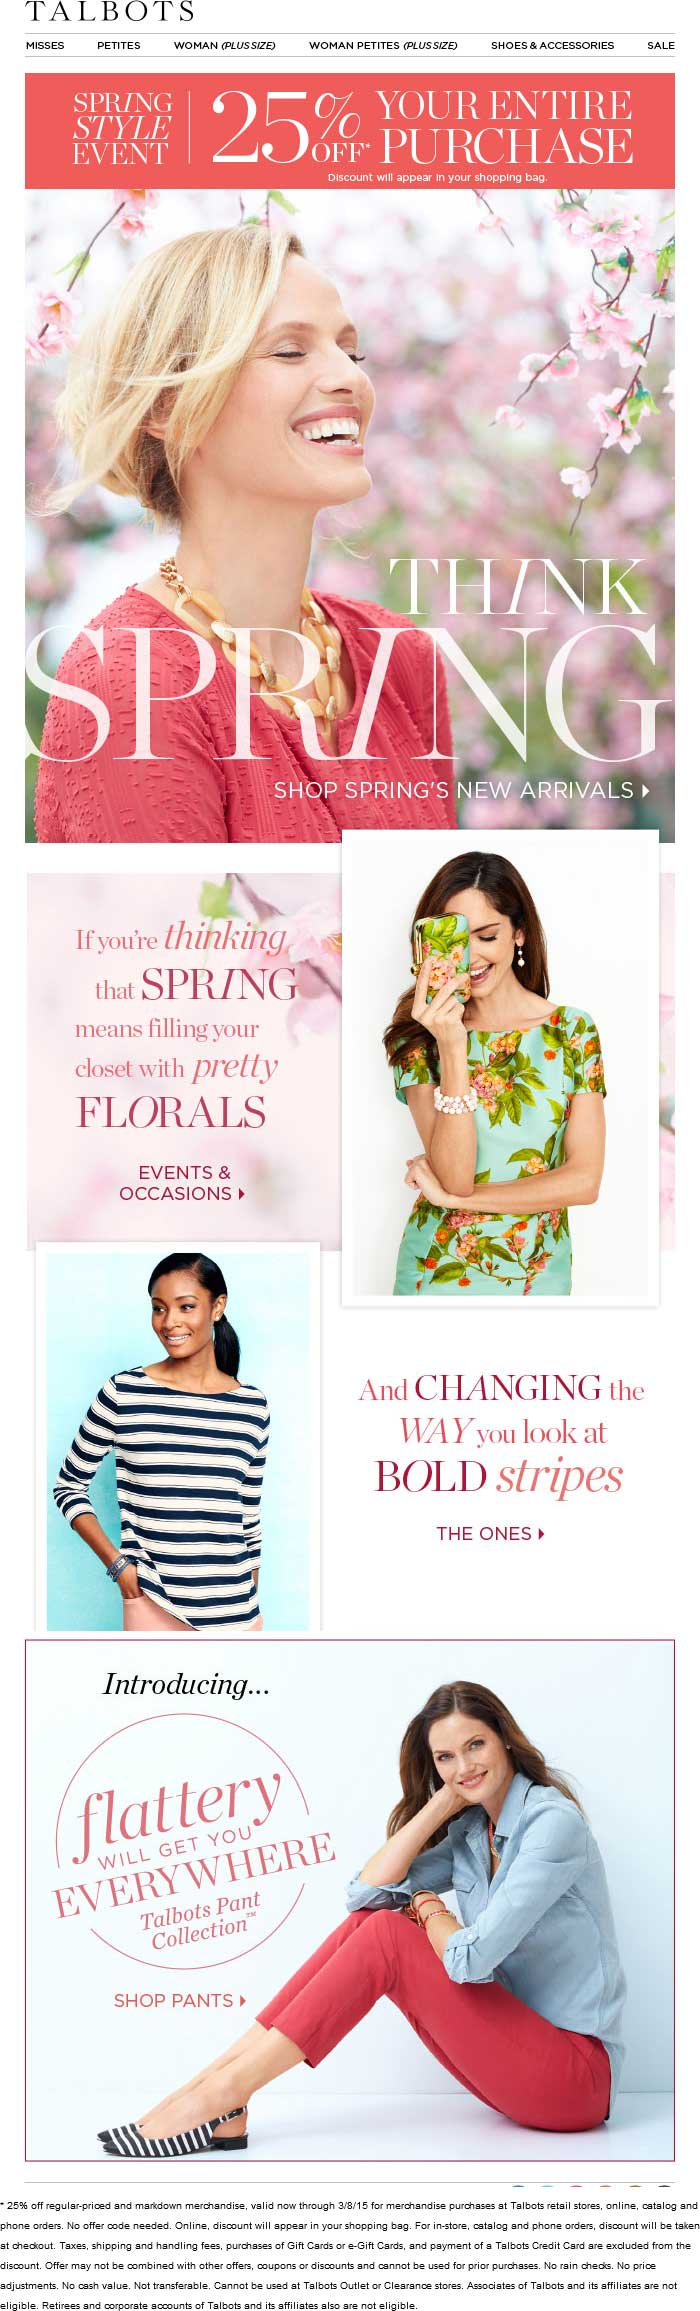 Talbots Coupon April 2017 Extra 25% off at Talbots, ditto online